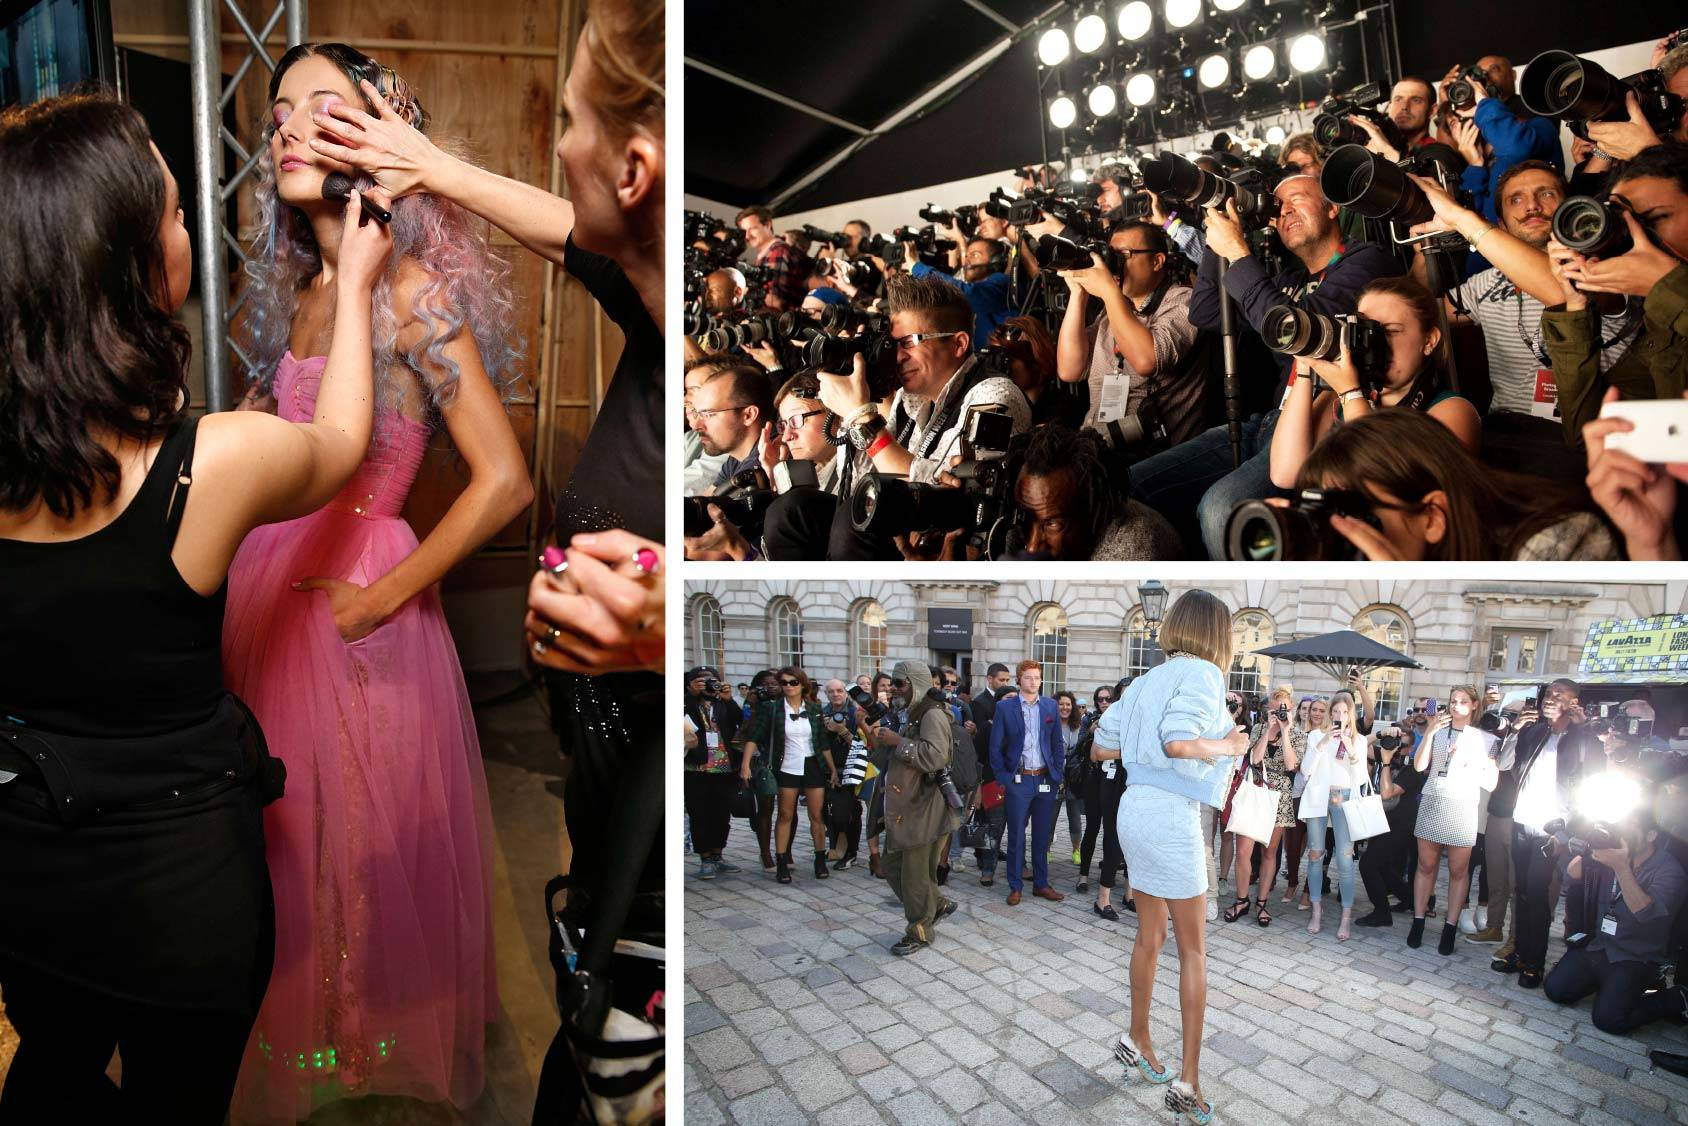 It is time for London Fashion Week. H&M Life asked local experts what to expect, All Over Press.